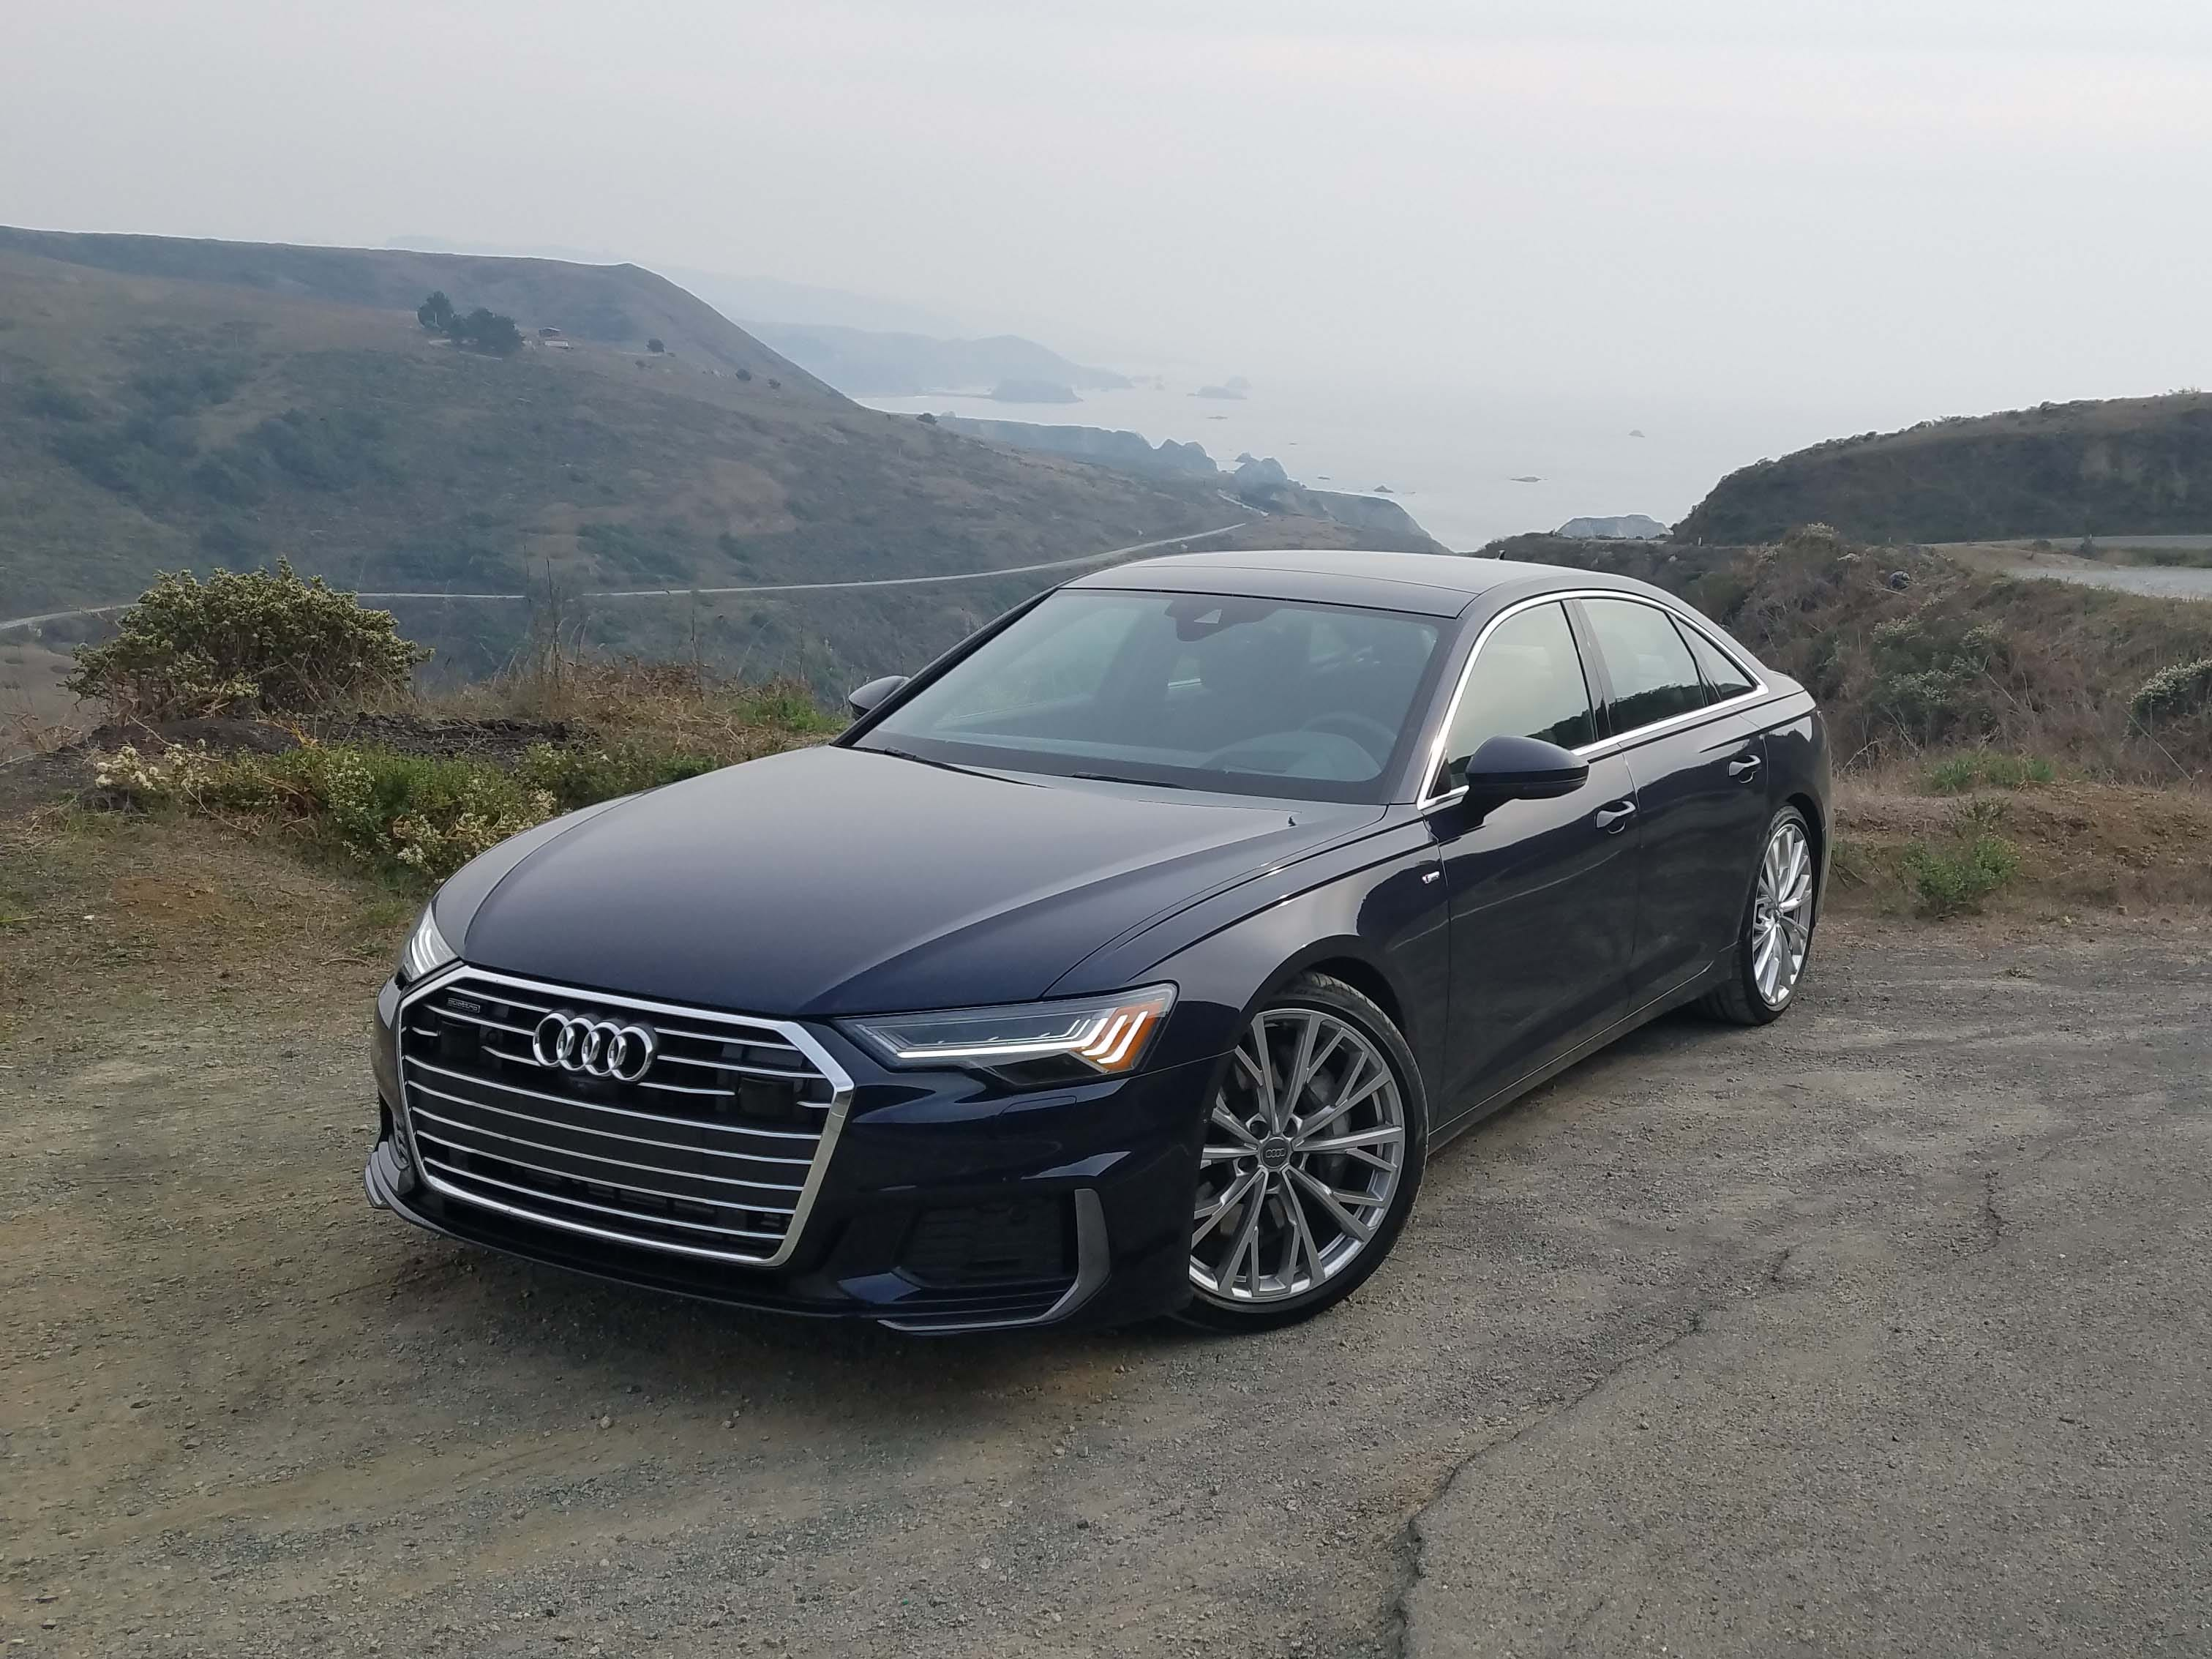 The Audi A6, above, is the basis for the Audi A7 drama queen with the same chassis, engine and interior. The A7 gets a unique wardrobe, but the cheaper A6 is the volume seller.